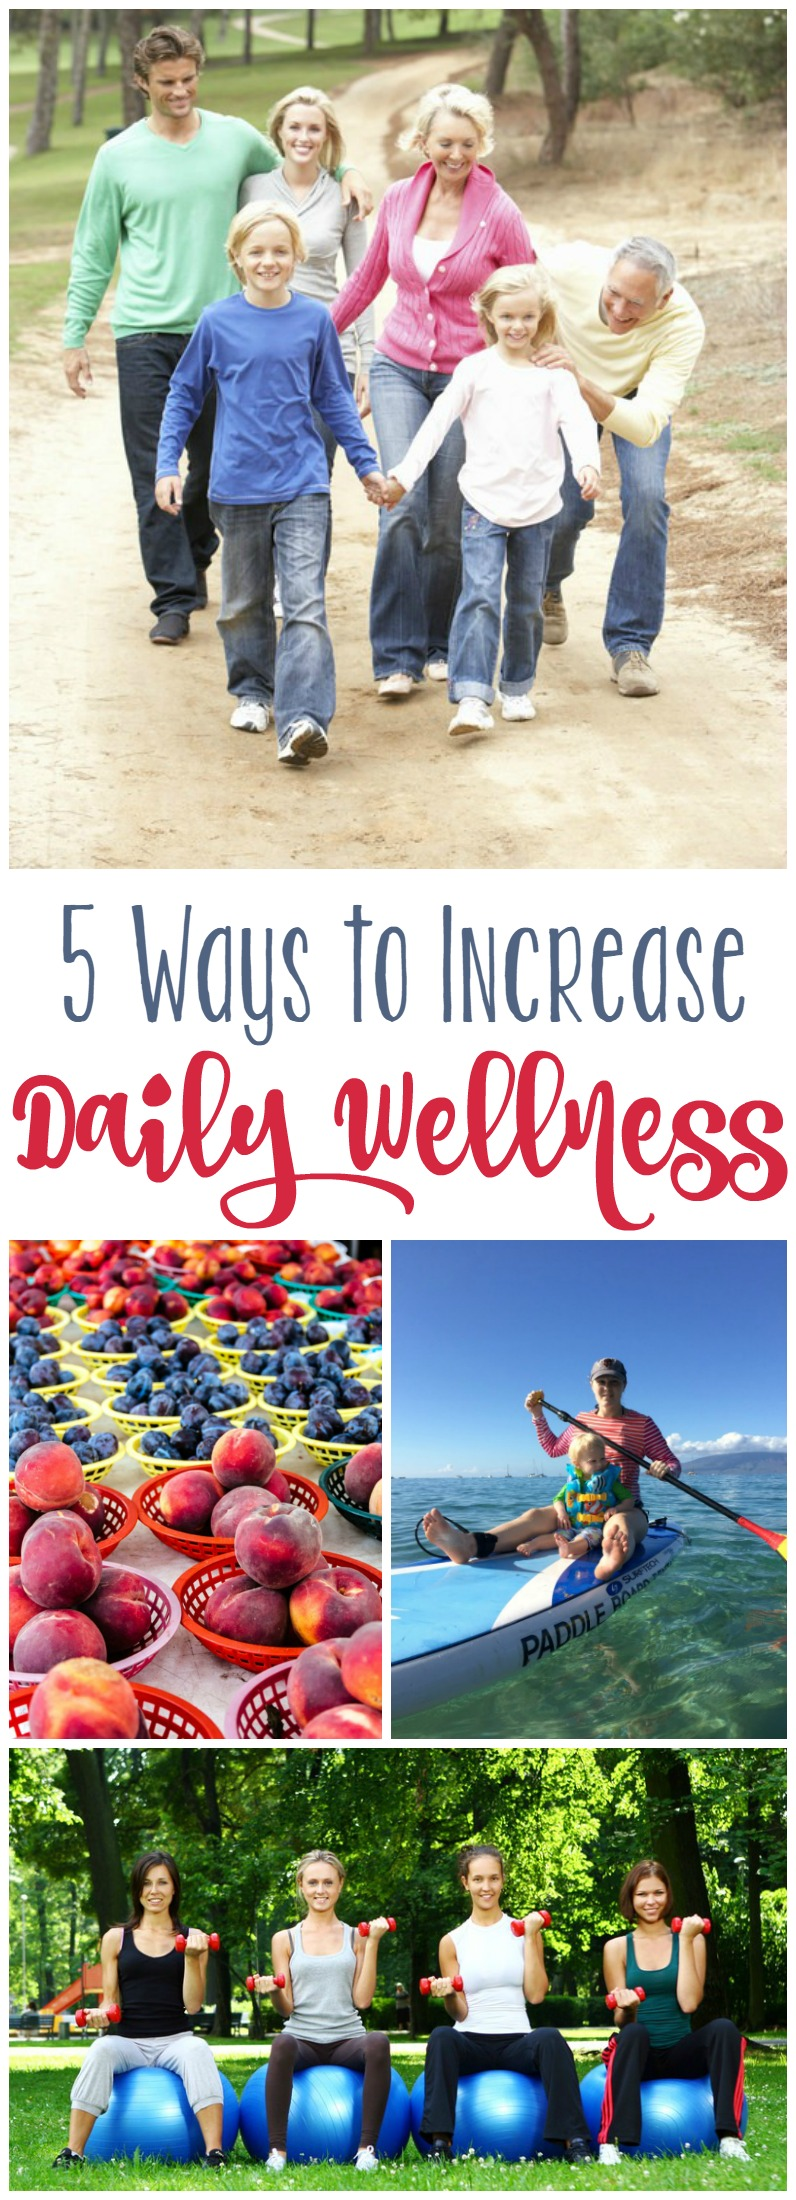 5 Ways to Increase Daily Wellness //  Life Anchored ad